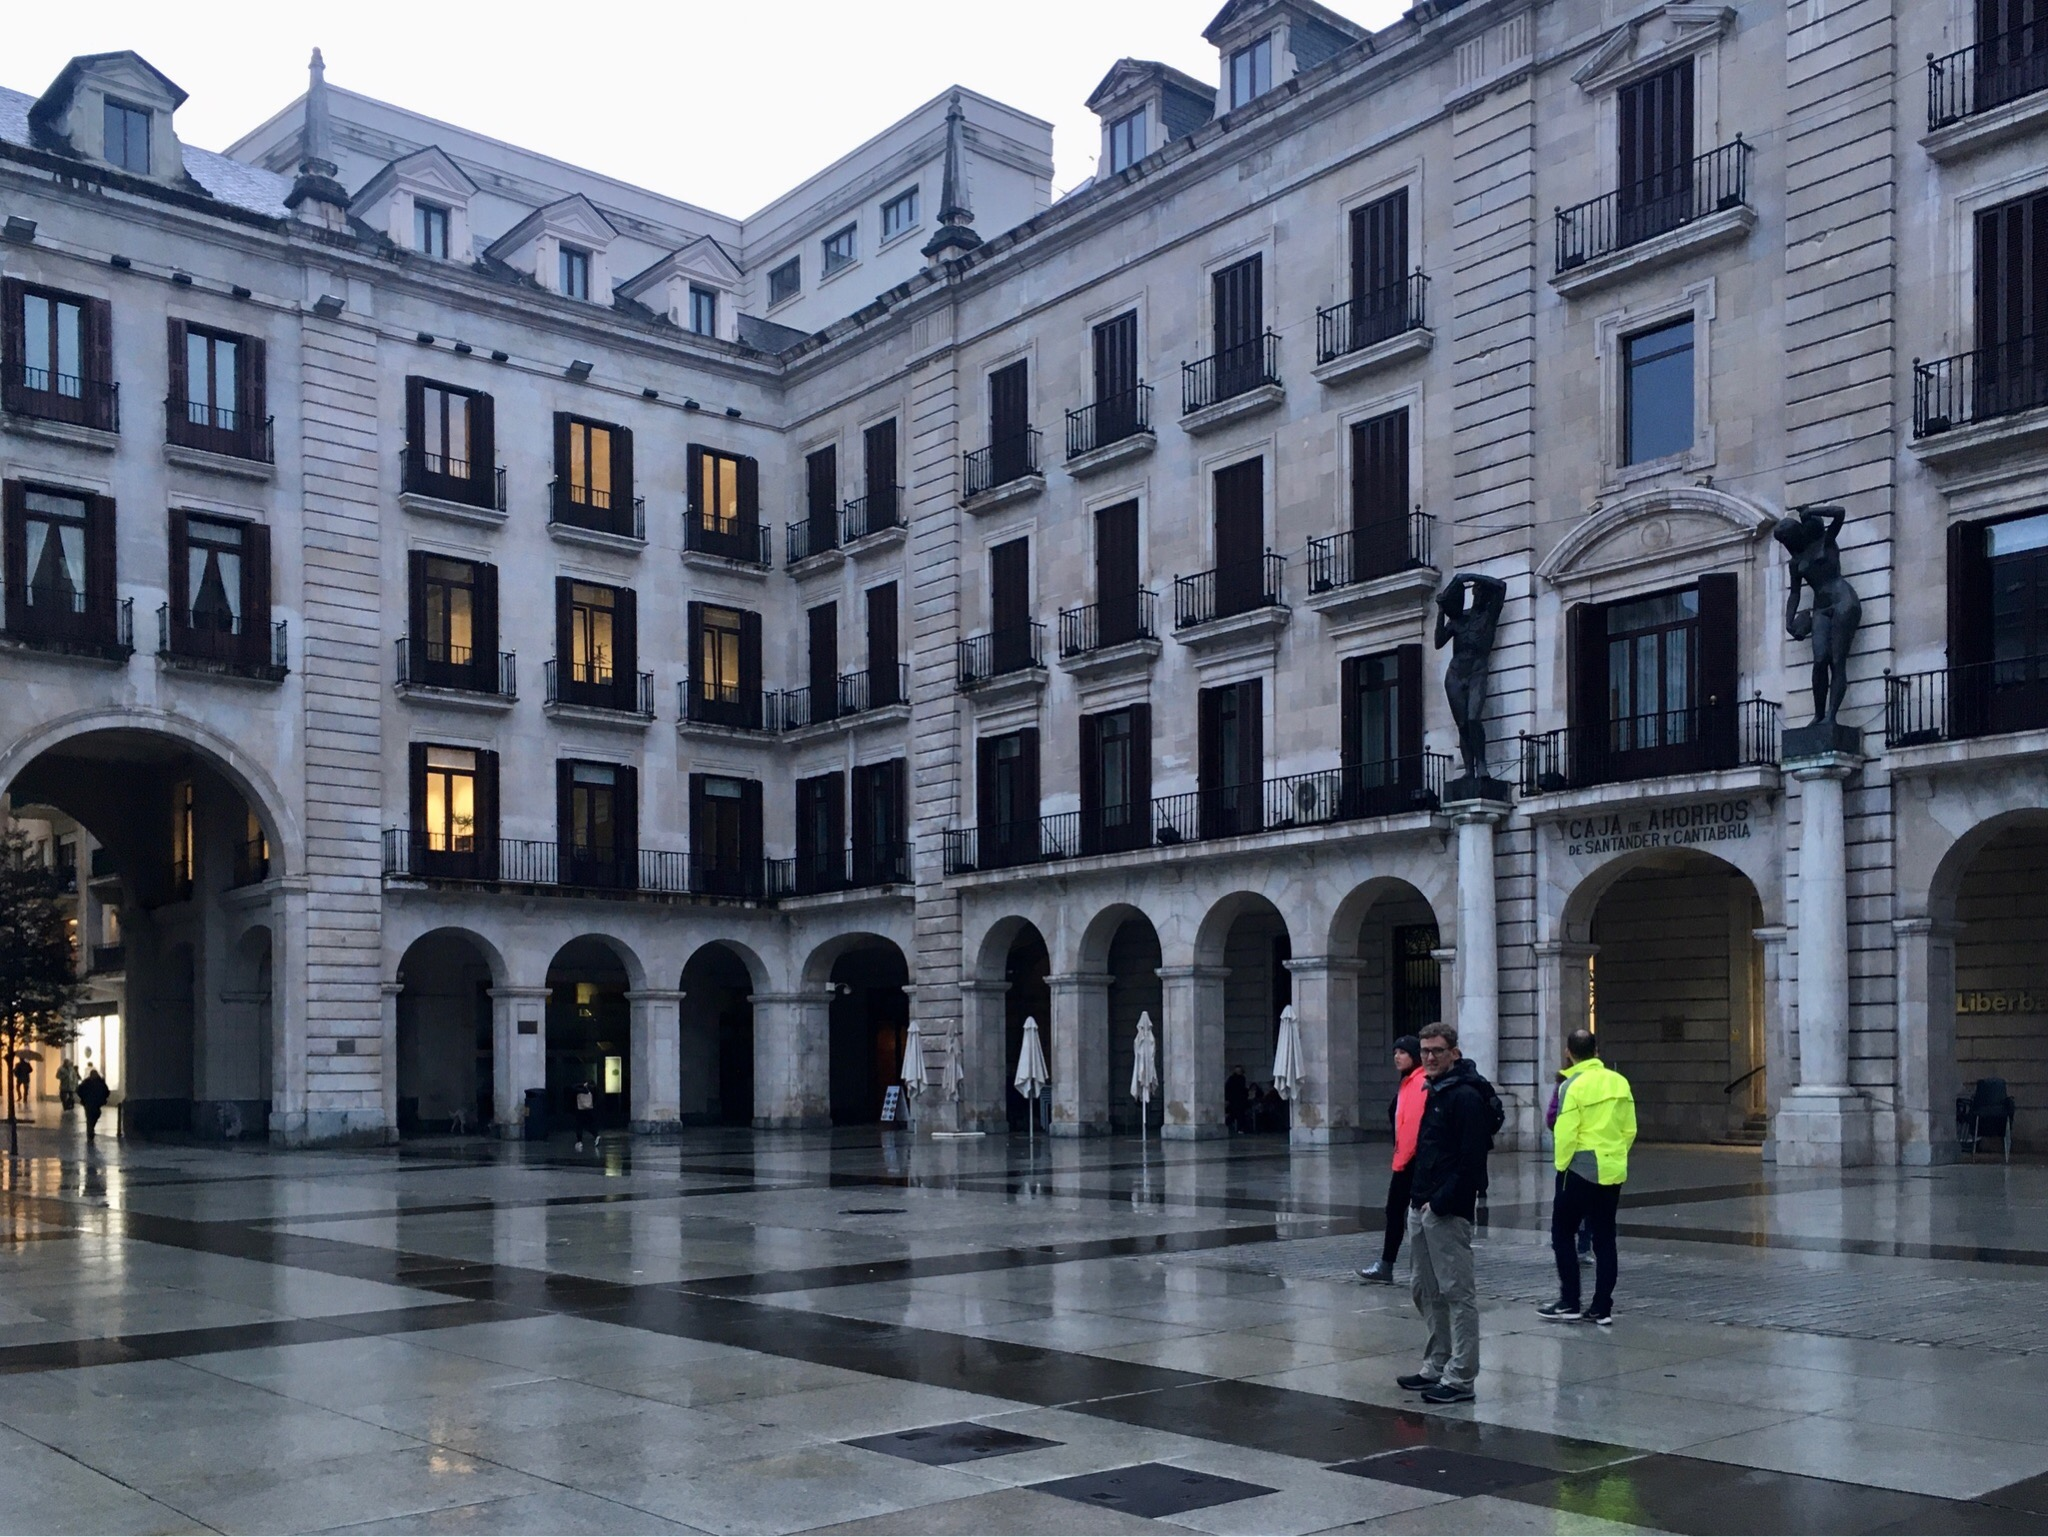 Exploring Santander after getting off the ferry